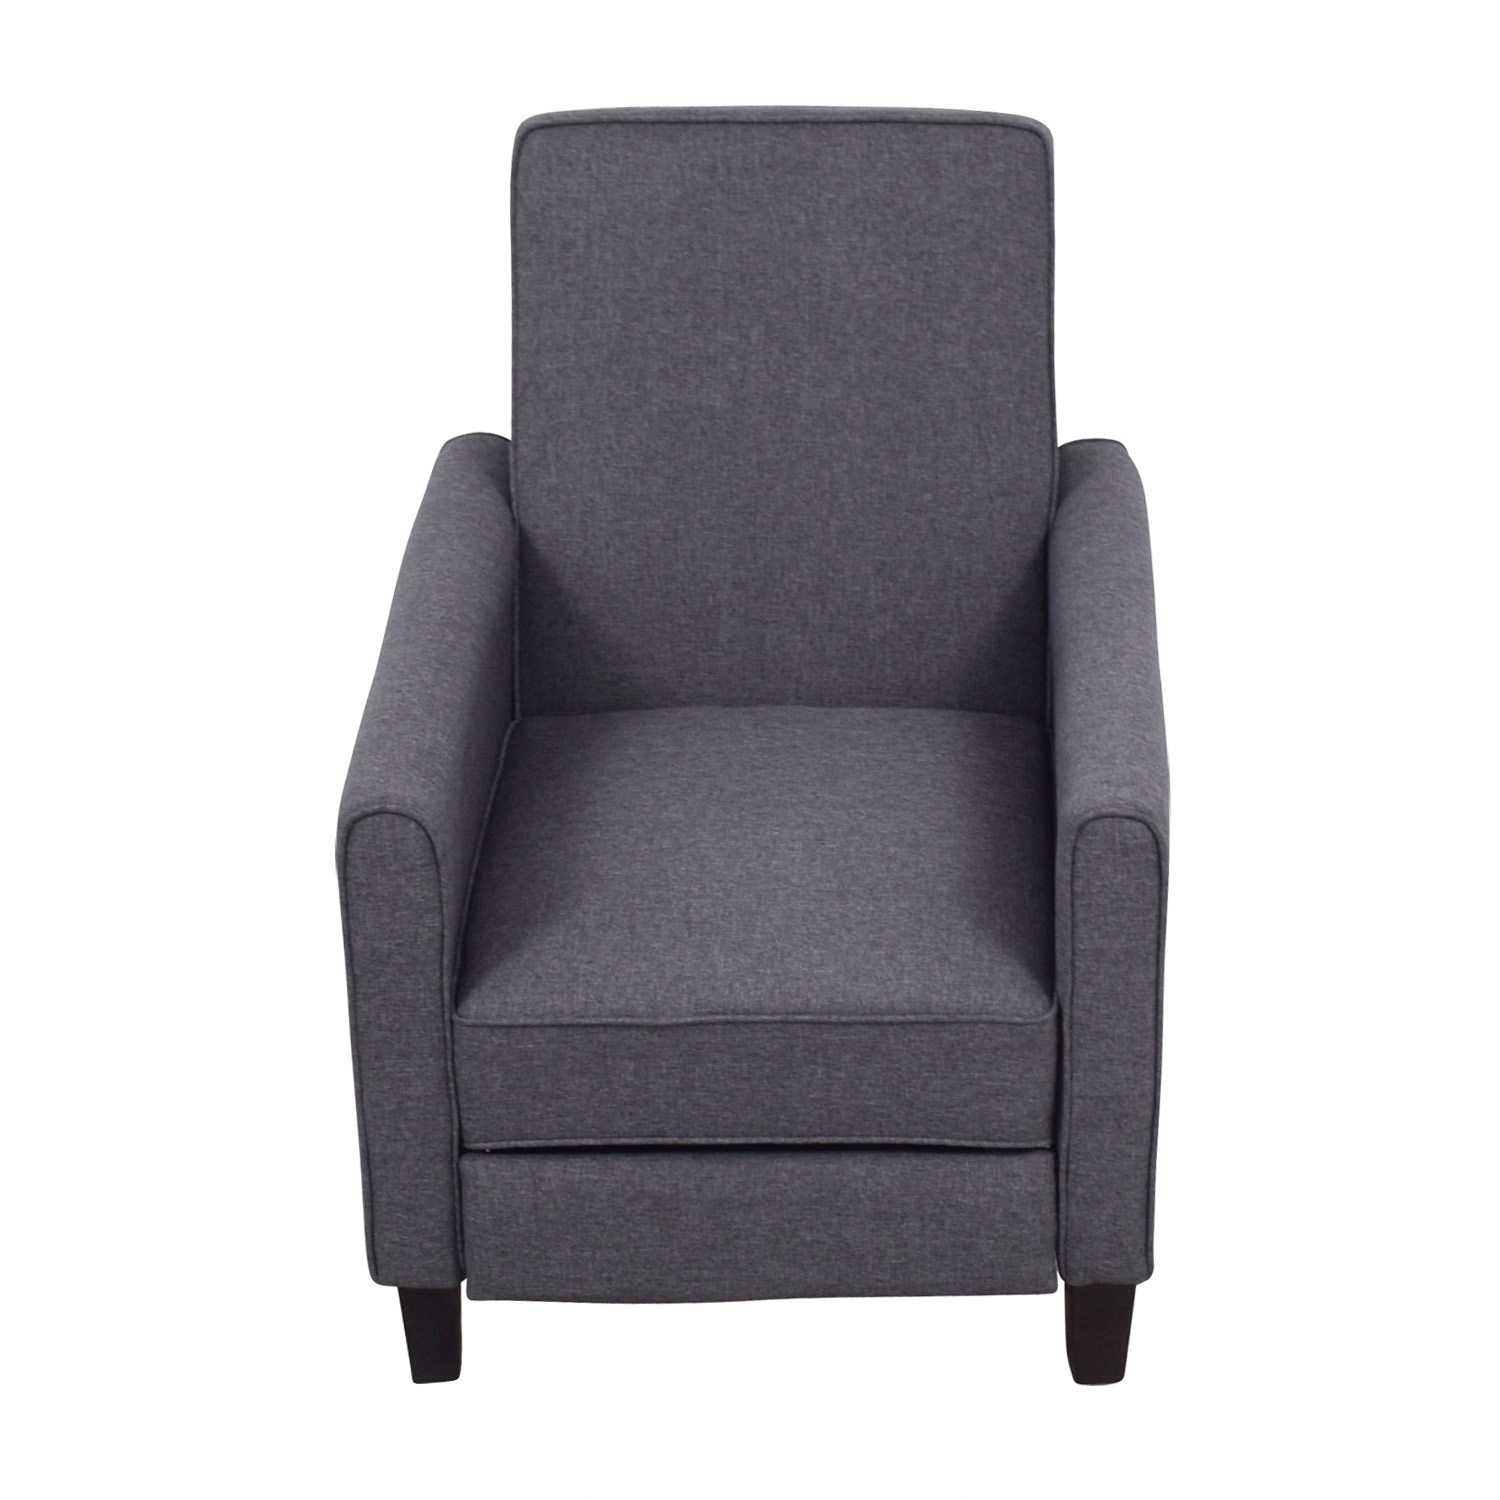 ... Buy Christopher Knight Home Darvis Grey Recliner Club Chair Christopher  Knight Home ...